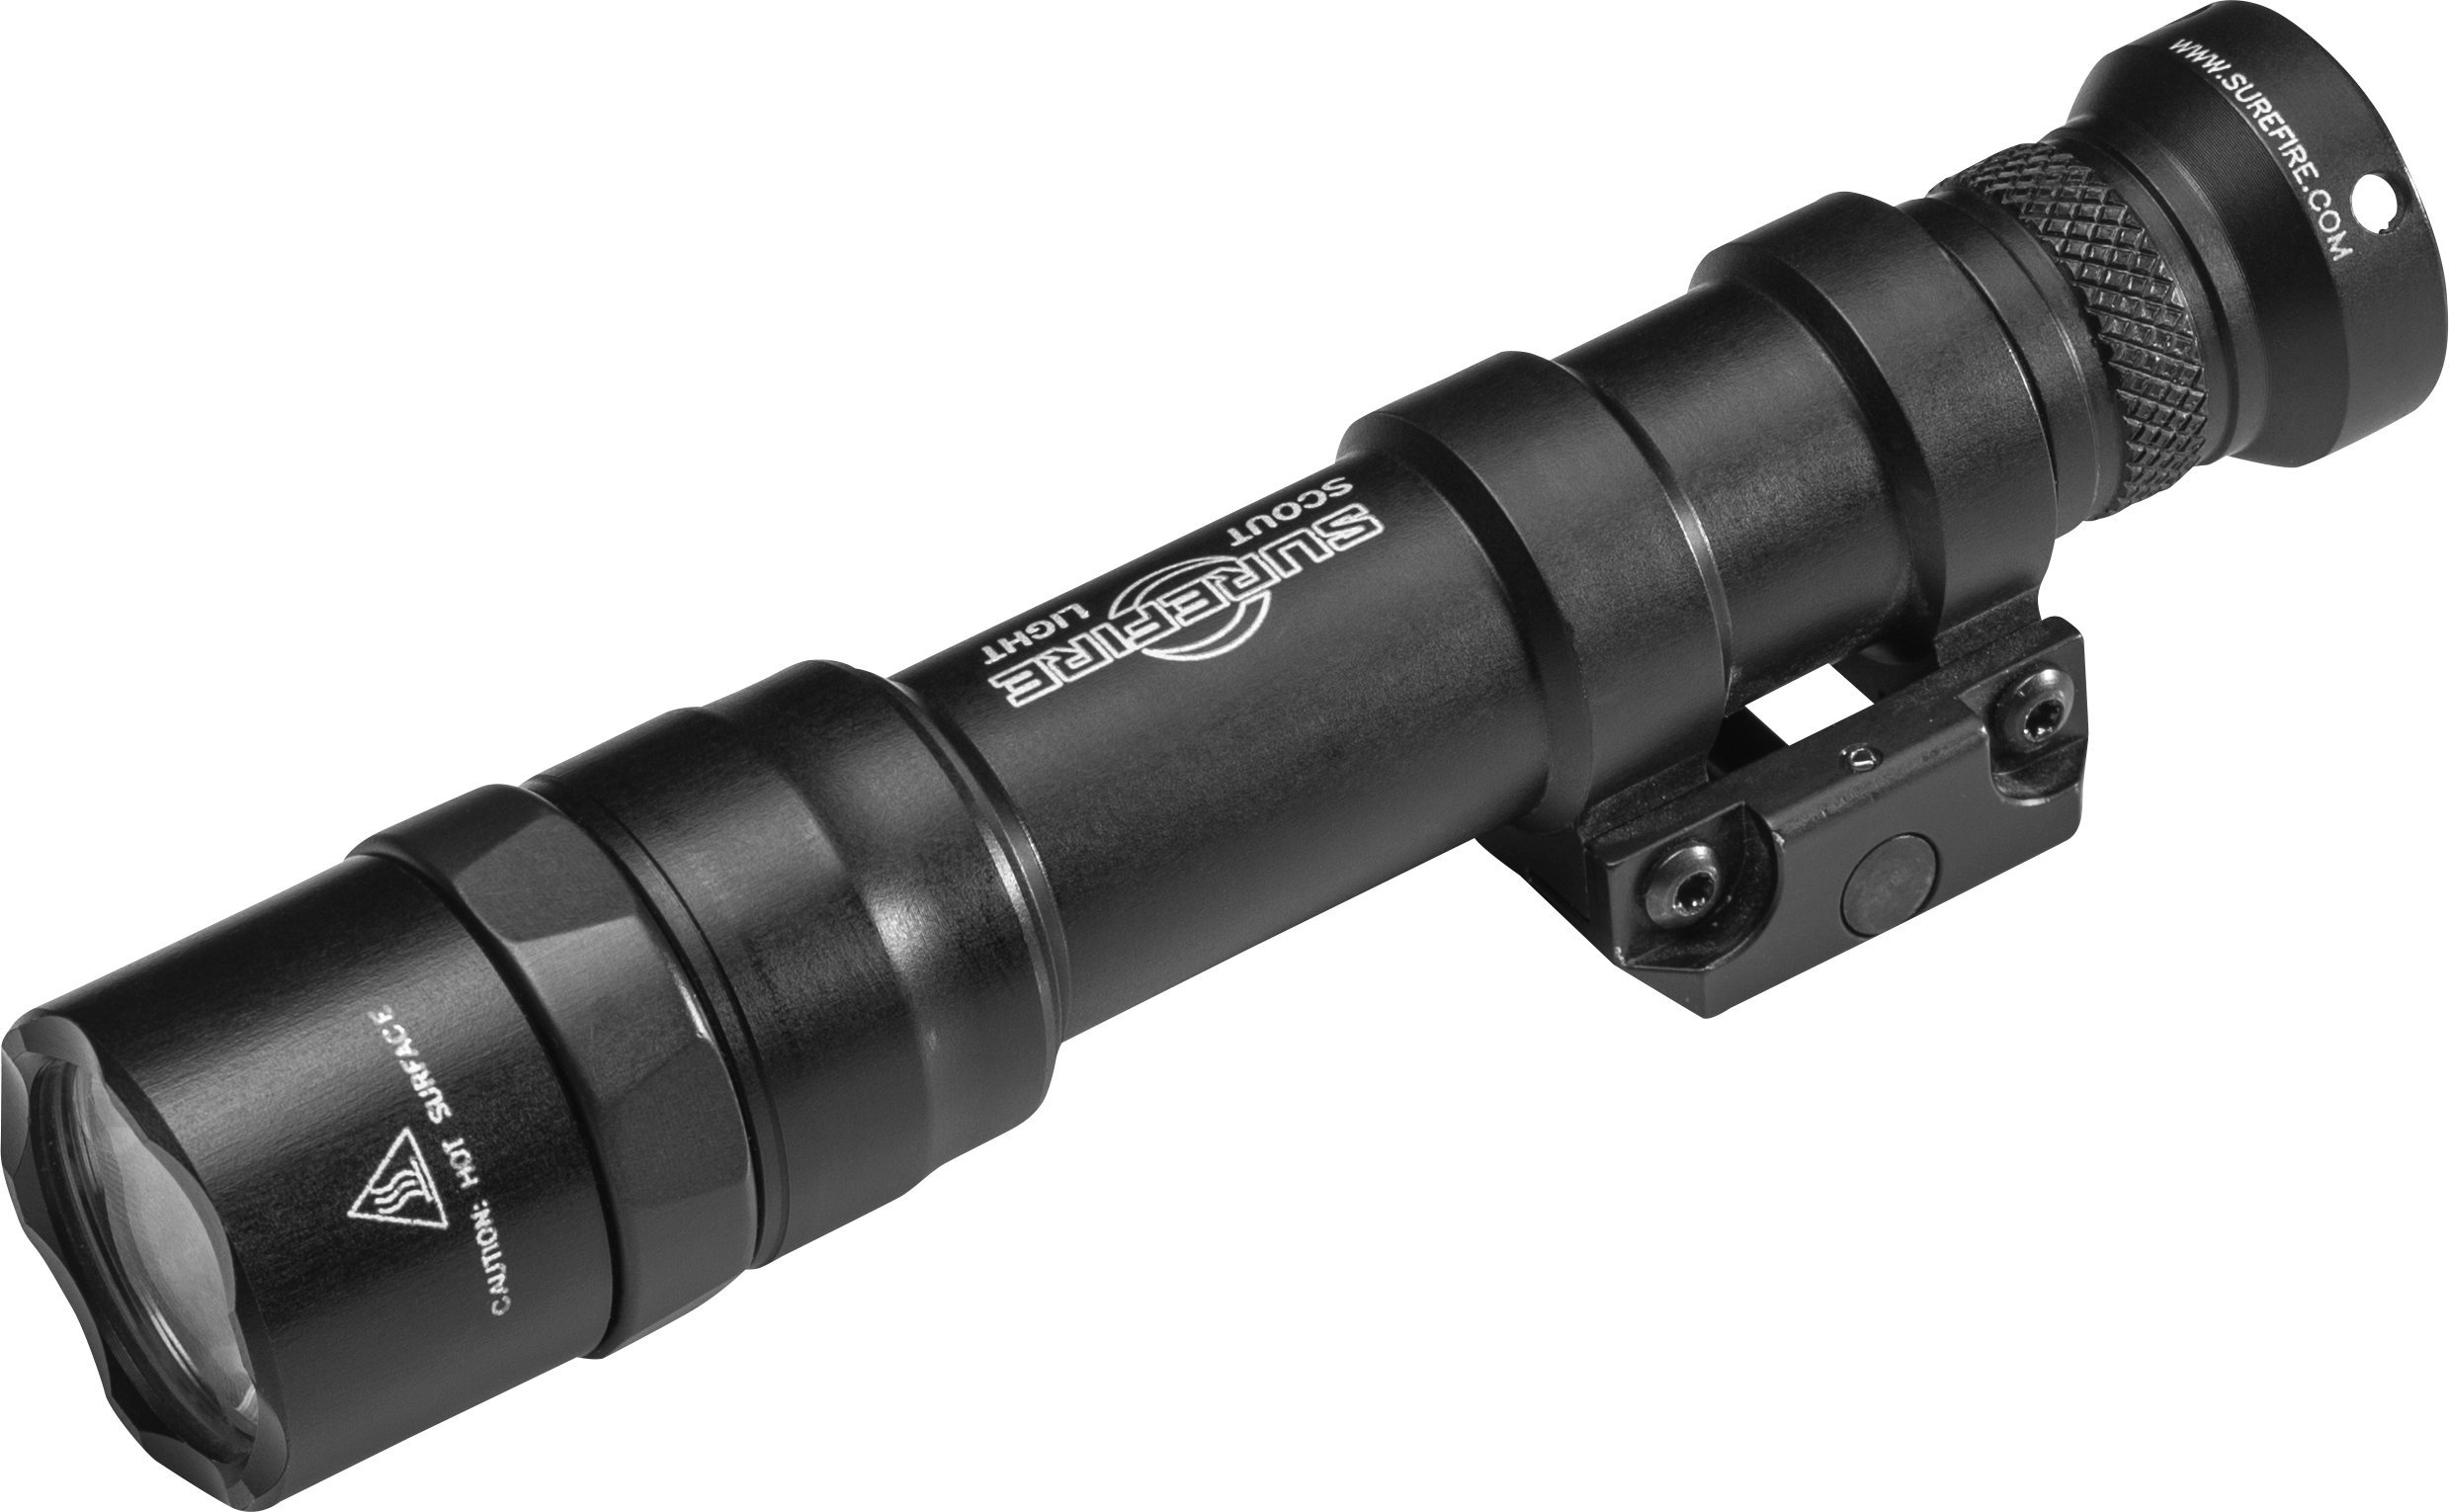 SureFire M600 Dual Fuel Scout Light with Z68 Switch and Thumbscrew Mount, Black by SureFire